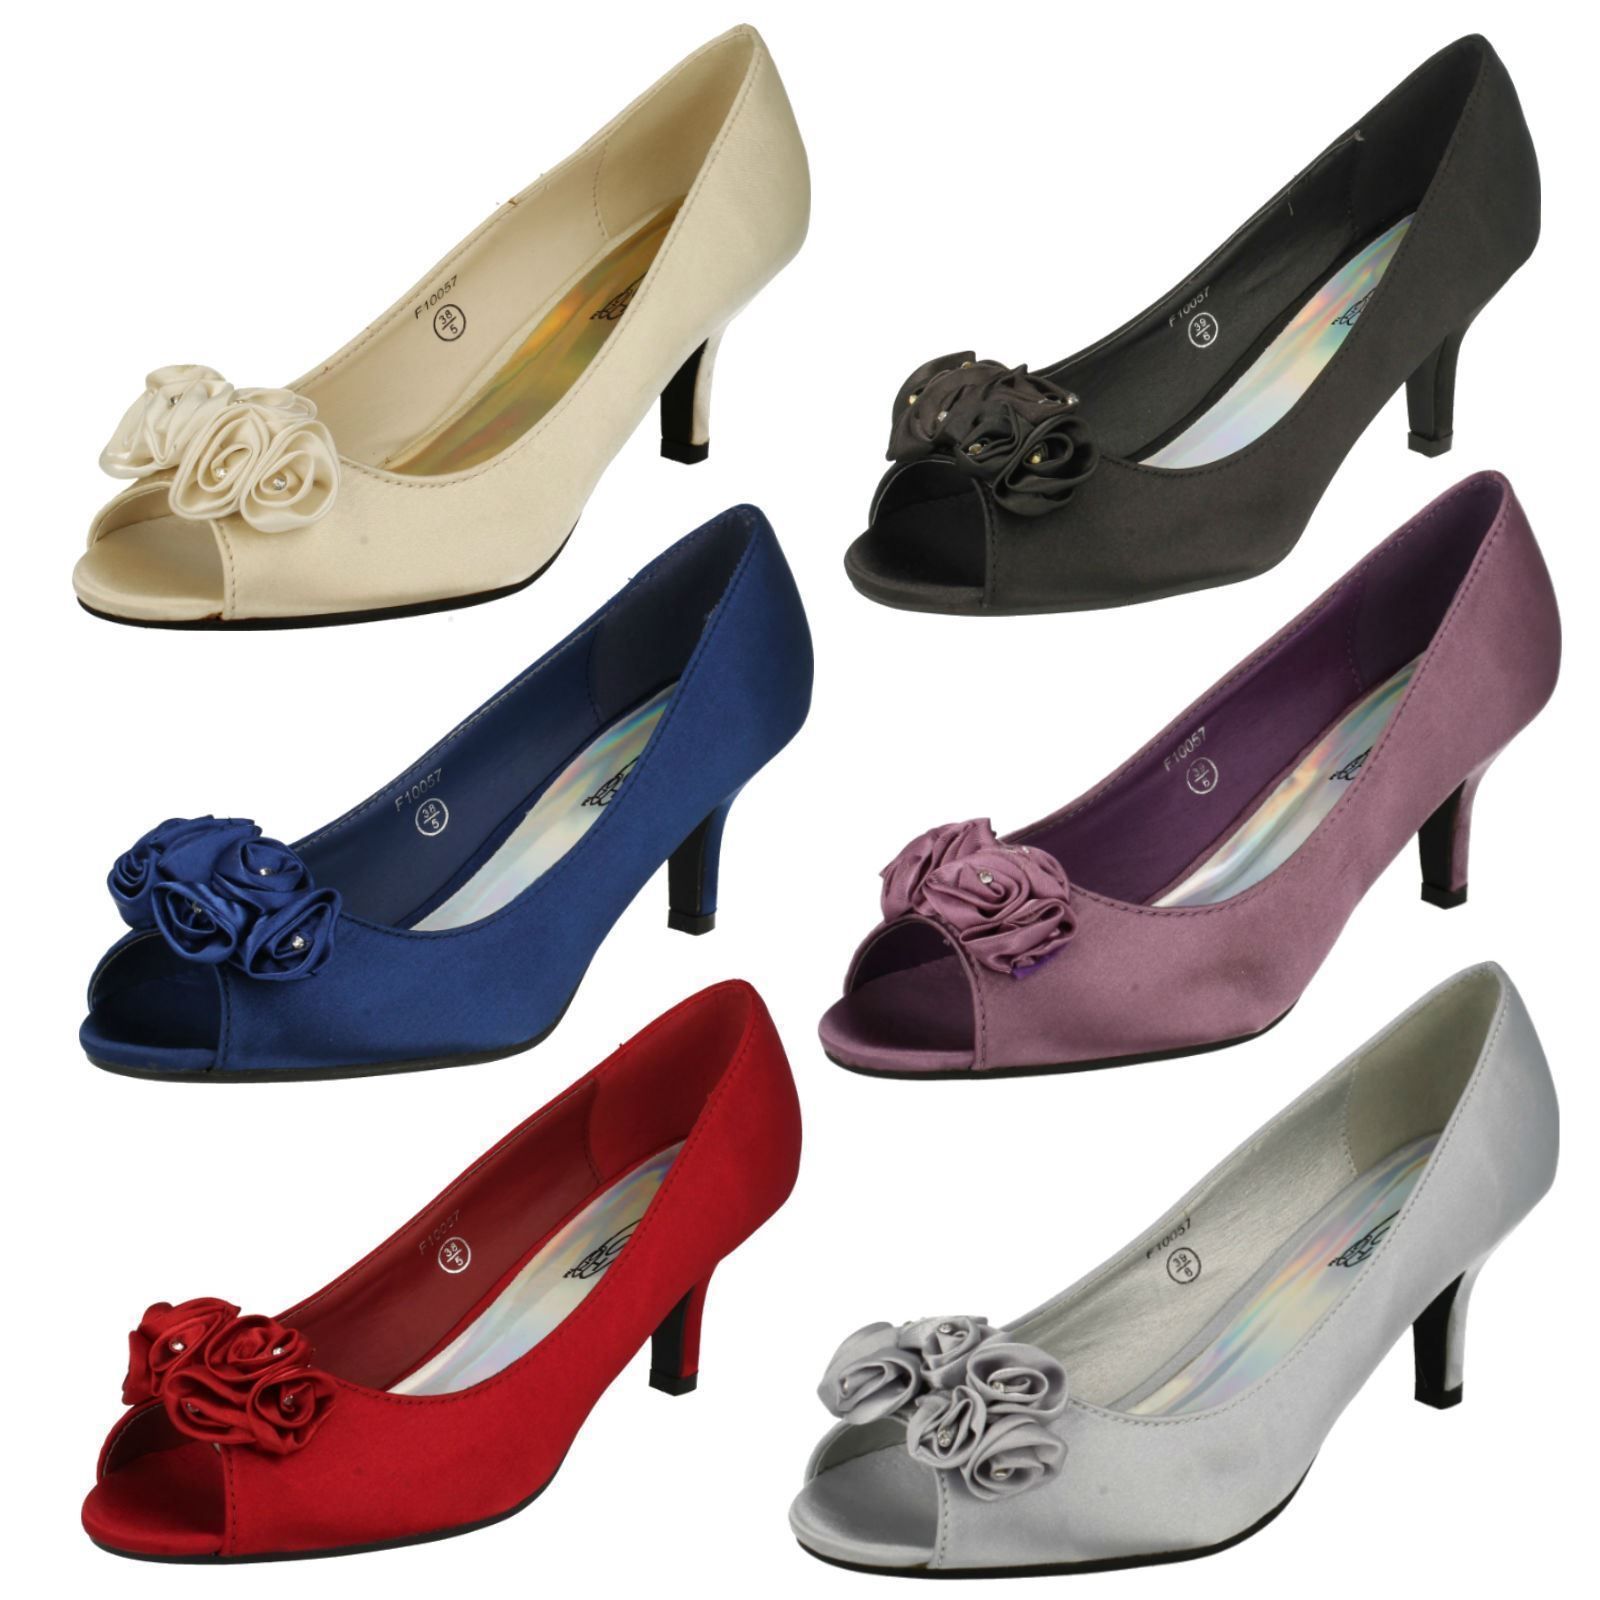 Ladies F10057 Peep-Toe Satin Heel Shoes with Flower   by SPOT ON £24.99